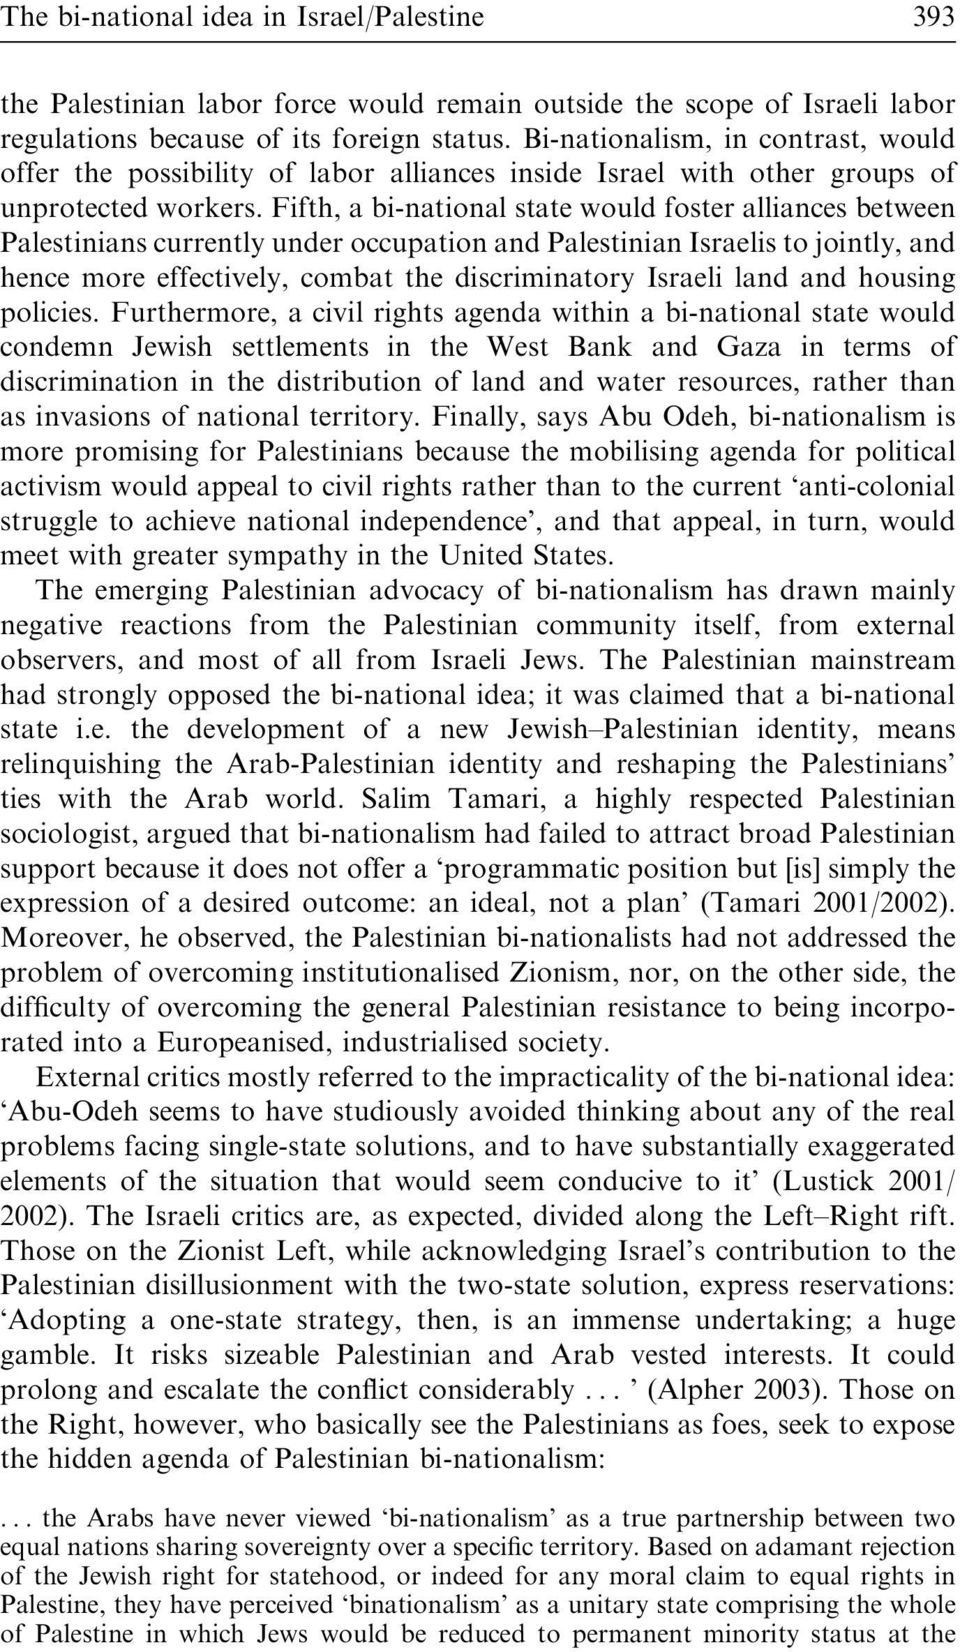 Fifth, a bi-national state would foster alliances between Palestinians currently under occupation and Palestinian Israelis to jointly, and hence more effectively, combat the discriminatory Israeli